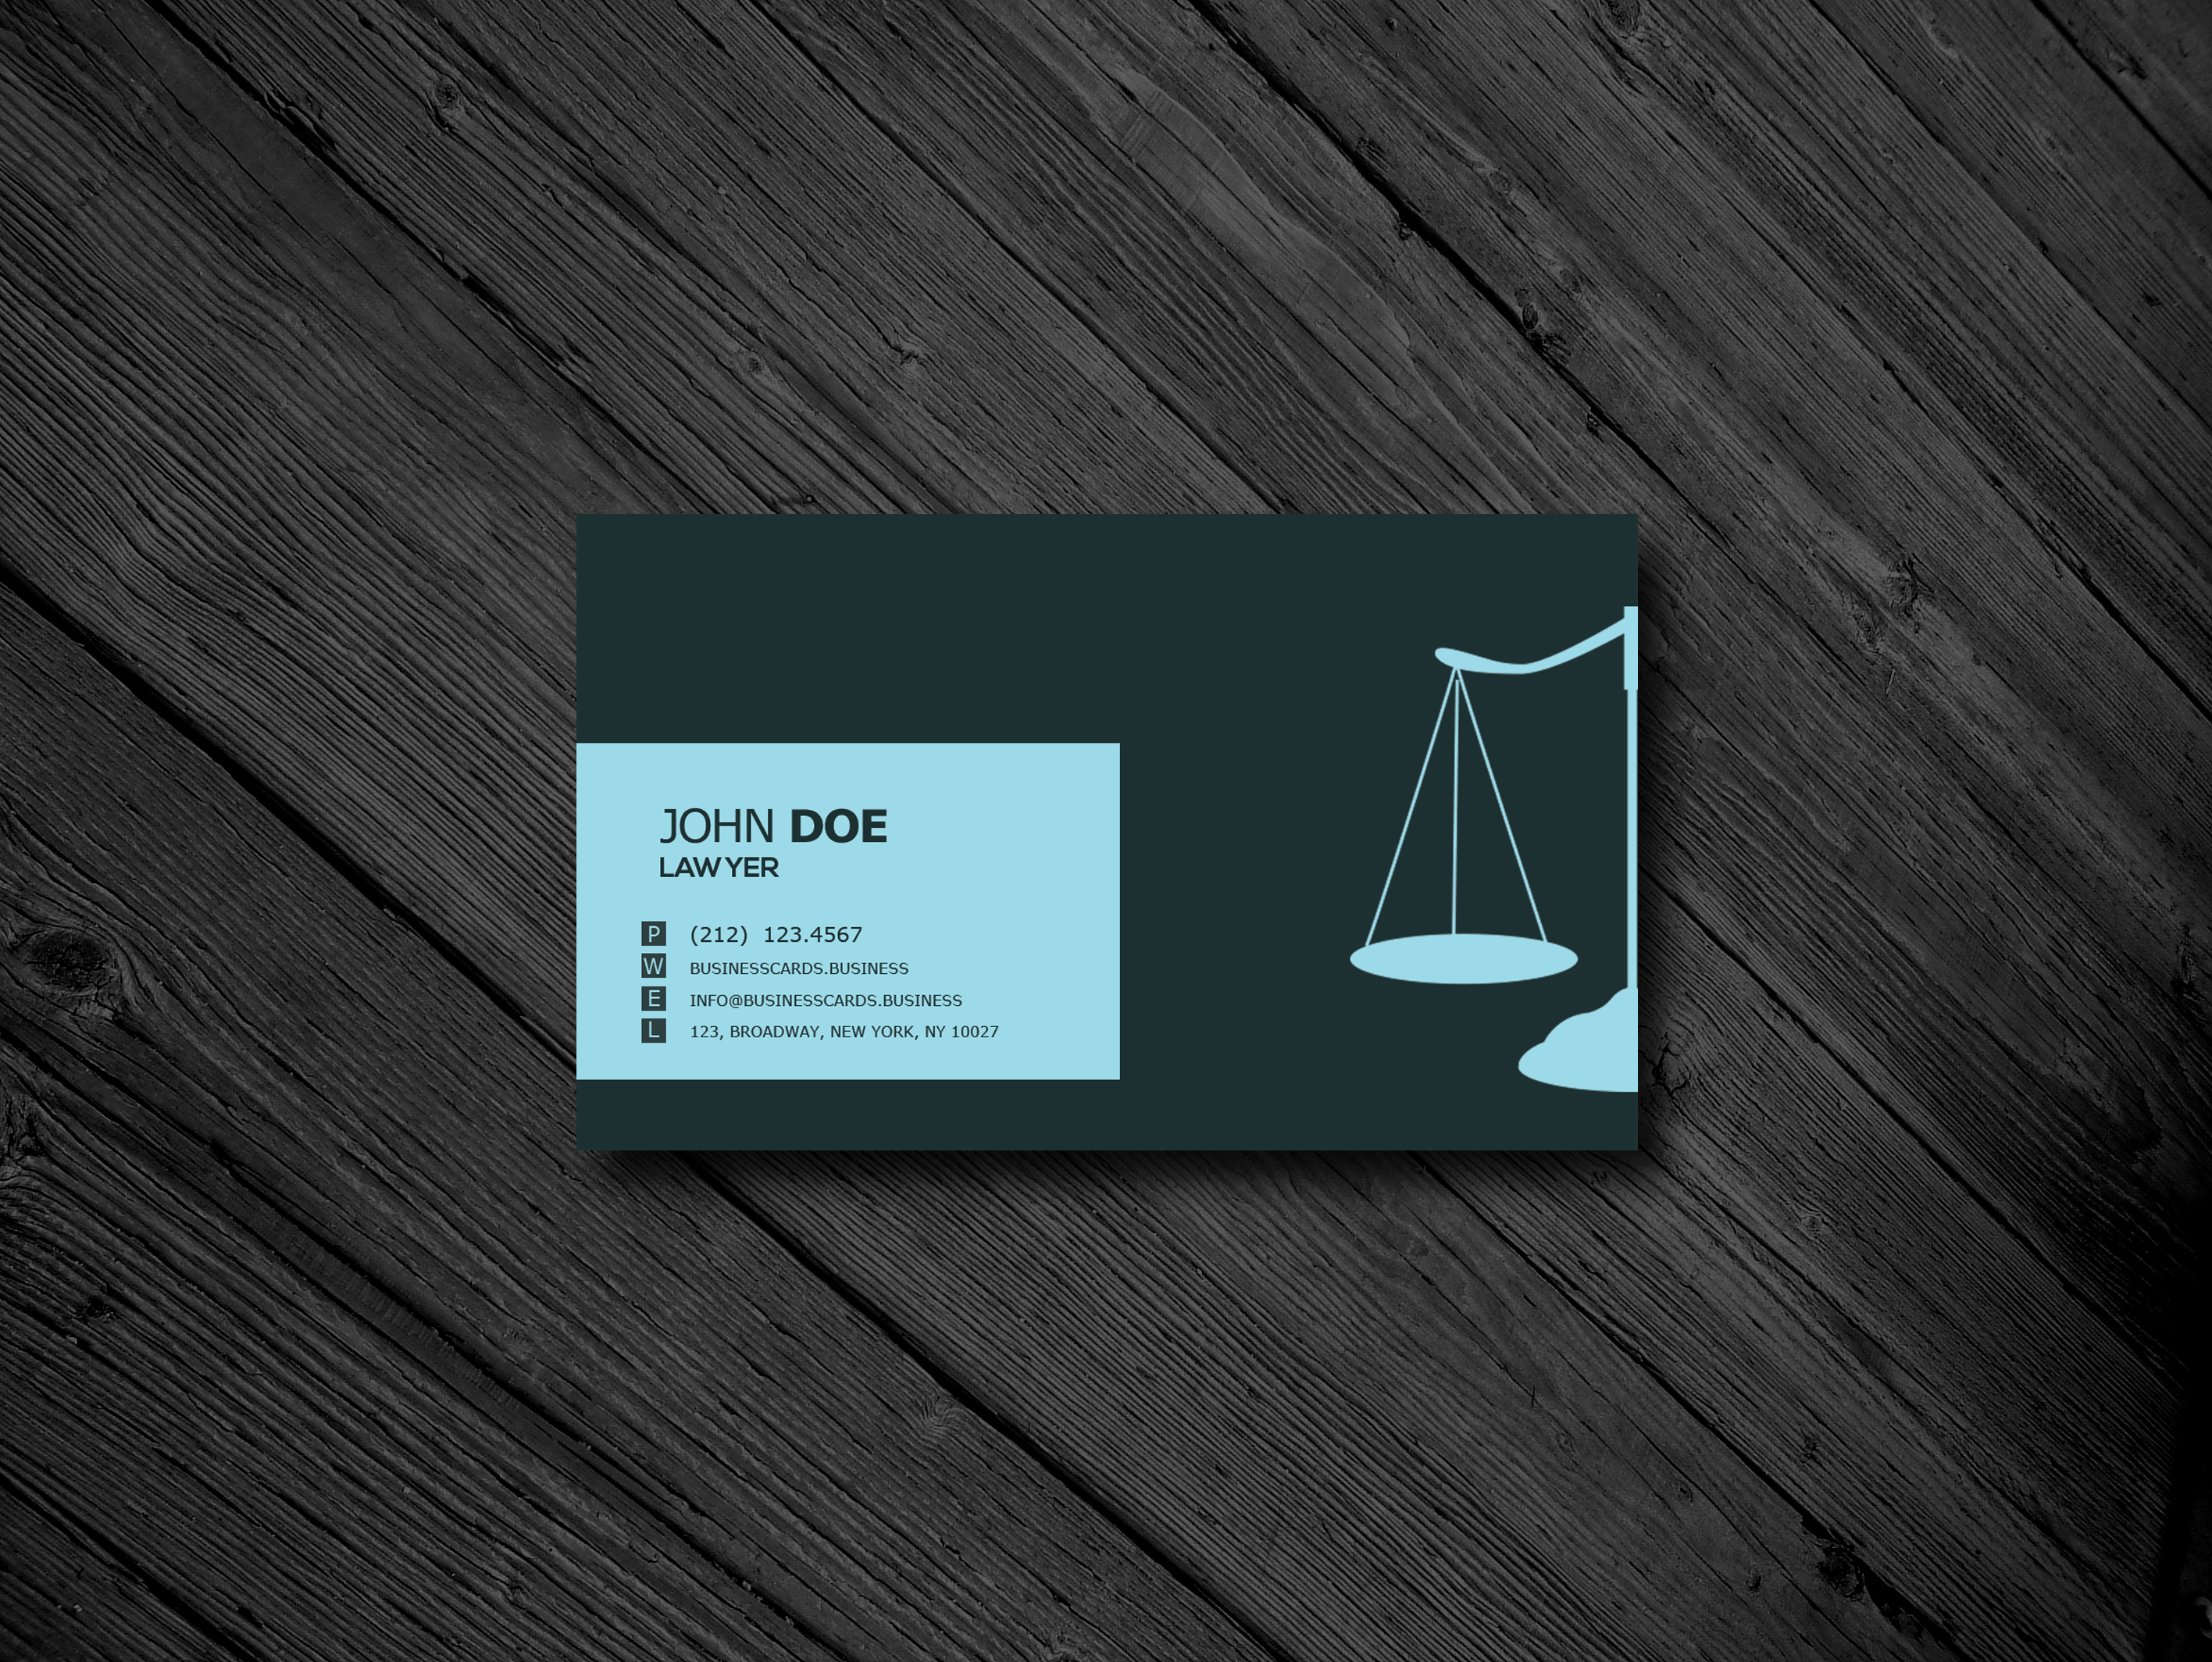 Free business card templates business cards templates free lawyer business card psd template friedricerecipe Gallery